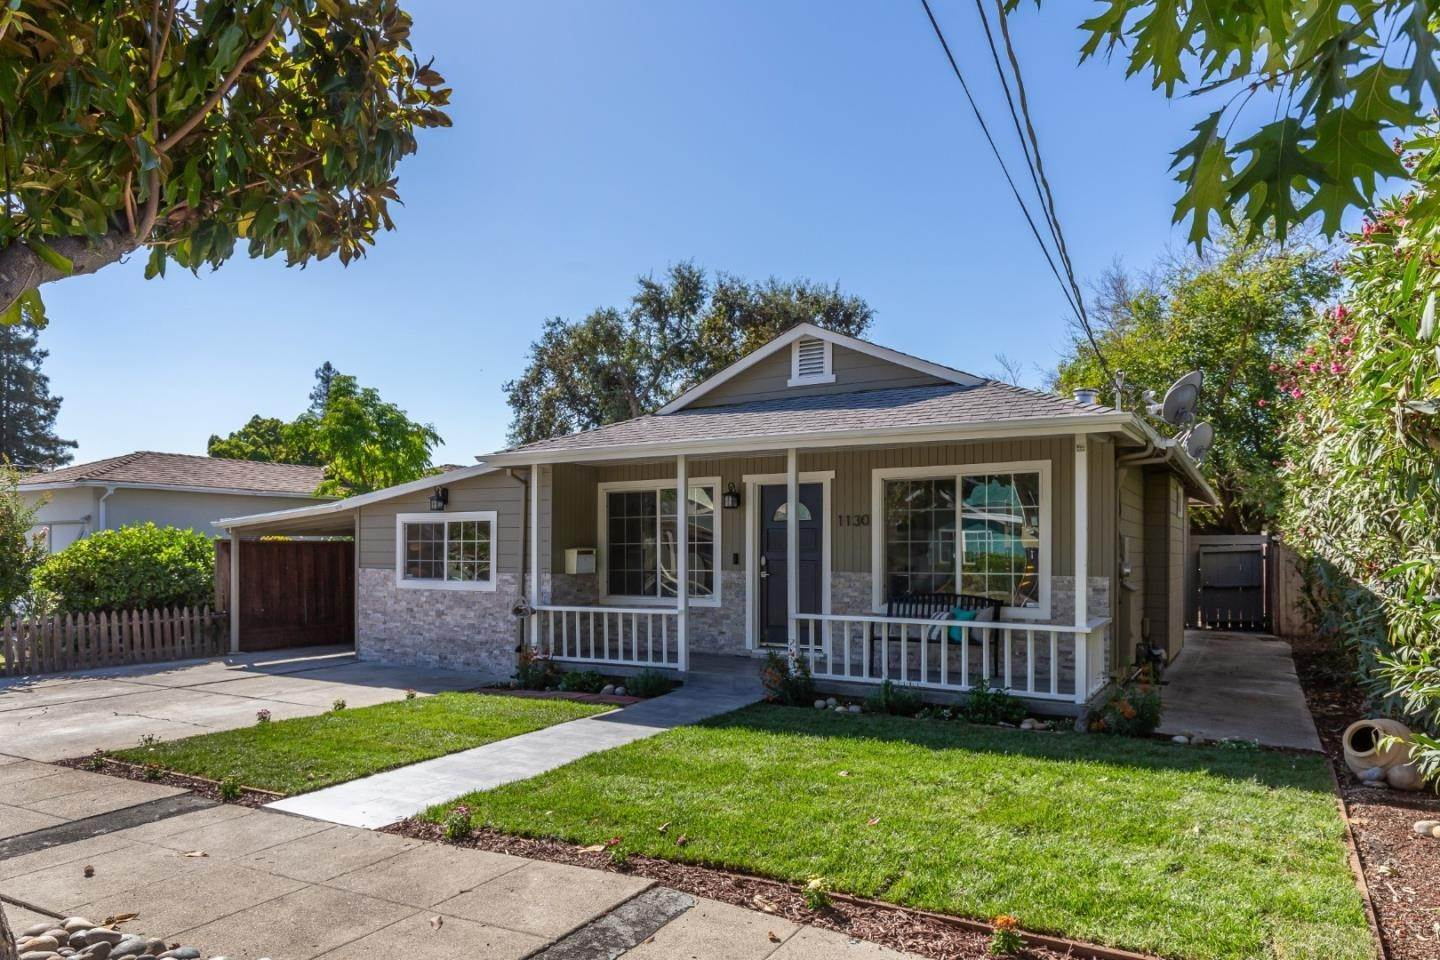 Single Family Homes for Sale at 1130 Saint Francis Street Redwood City, California 94061 United States